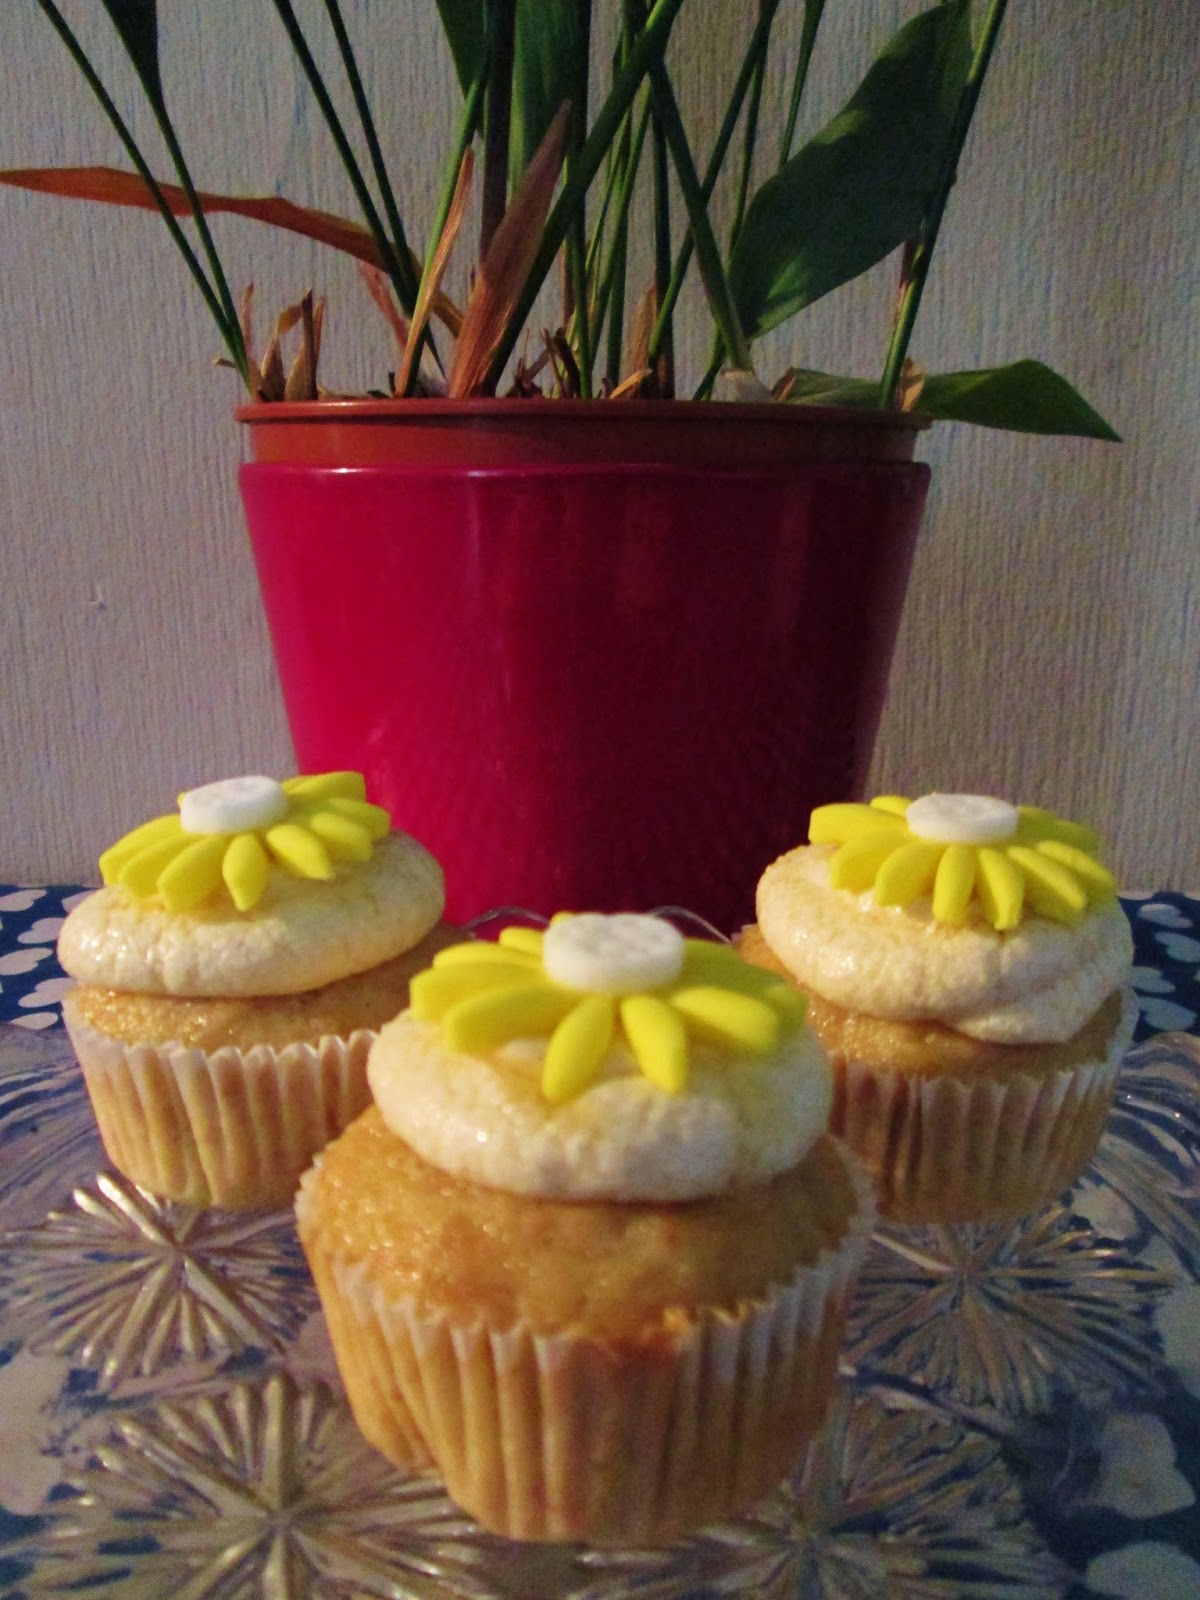 http://themessykitchenuk.blogspot.co.uk/2013/09/banana-cupcakes-with-honey-frosting.html